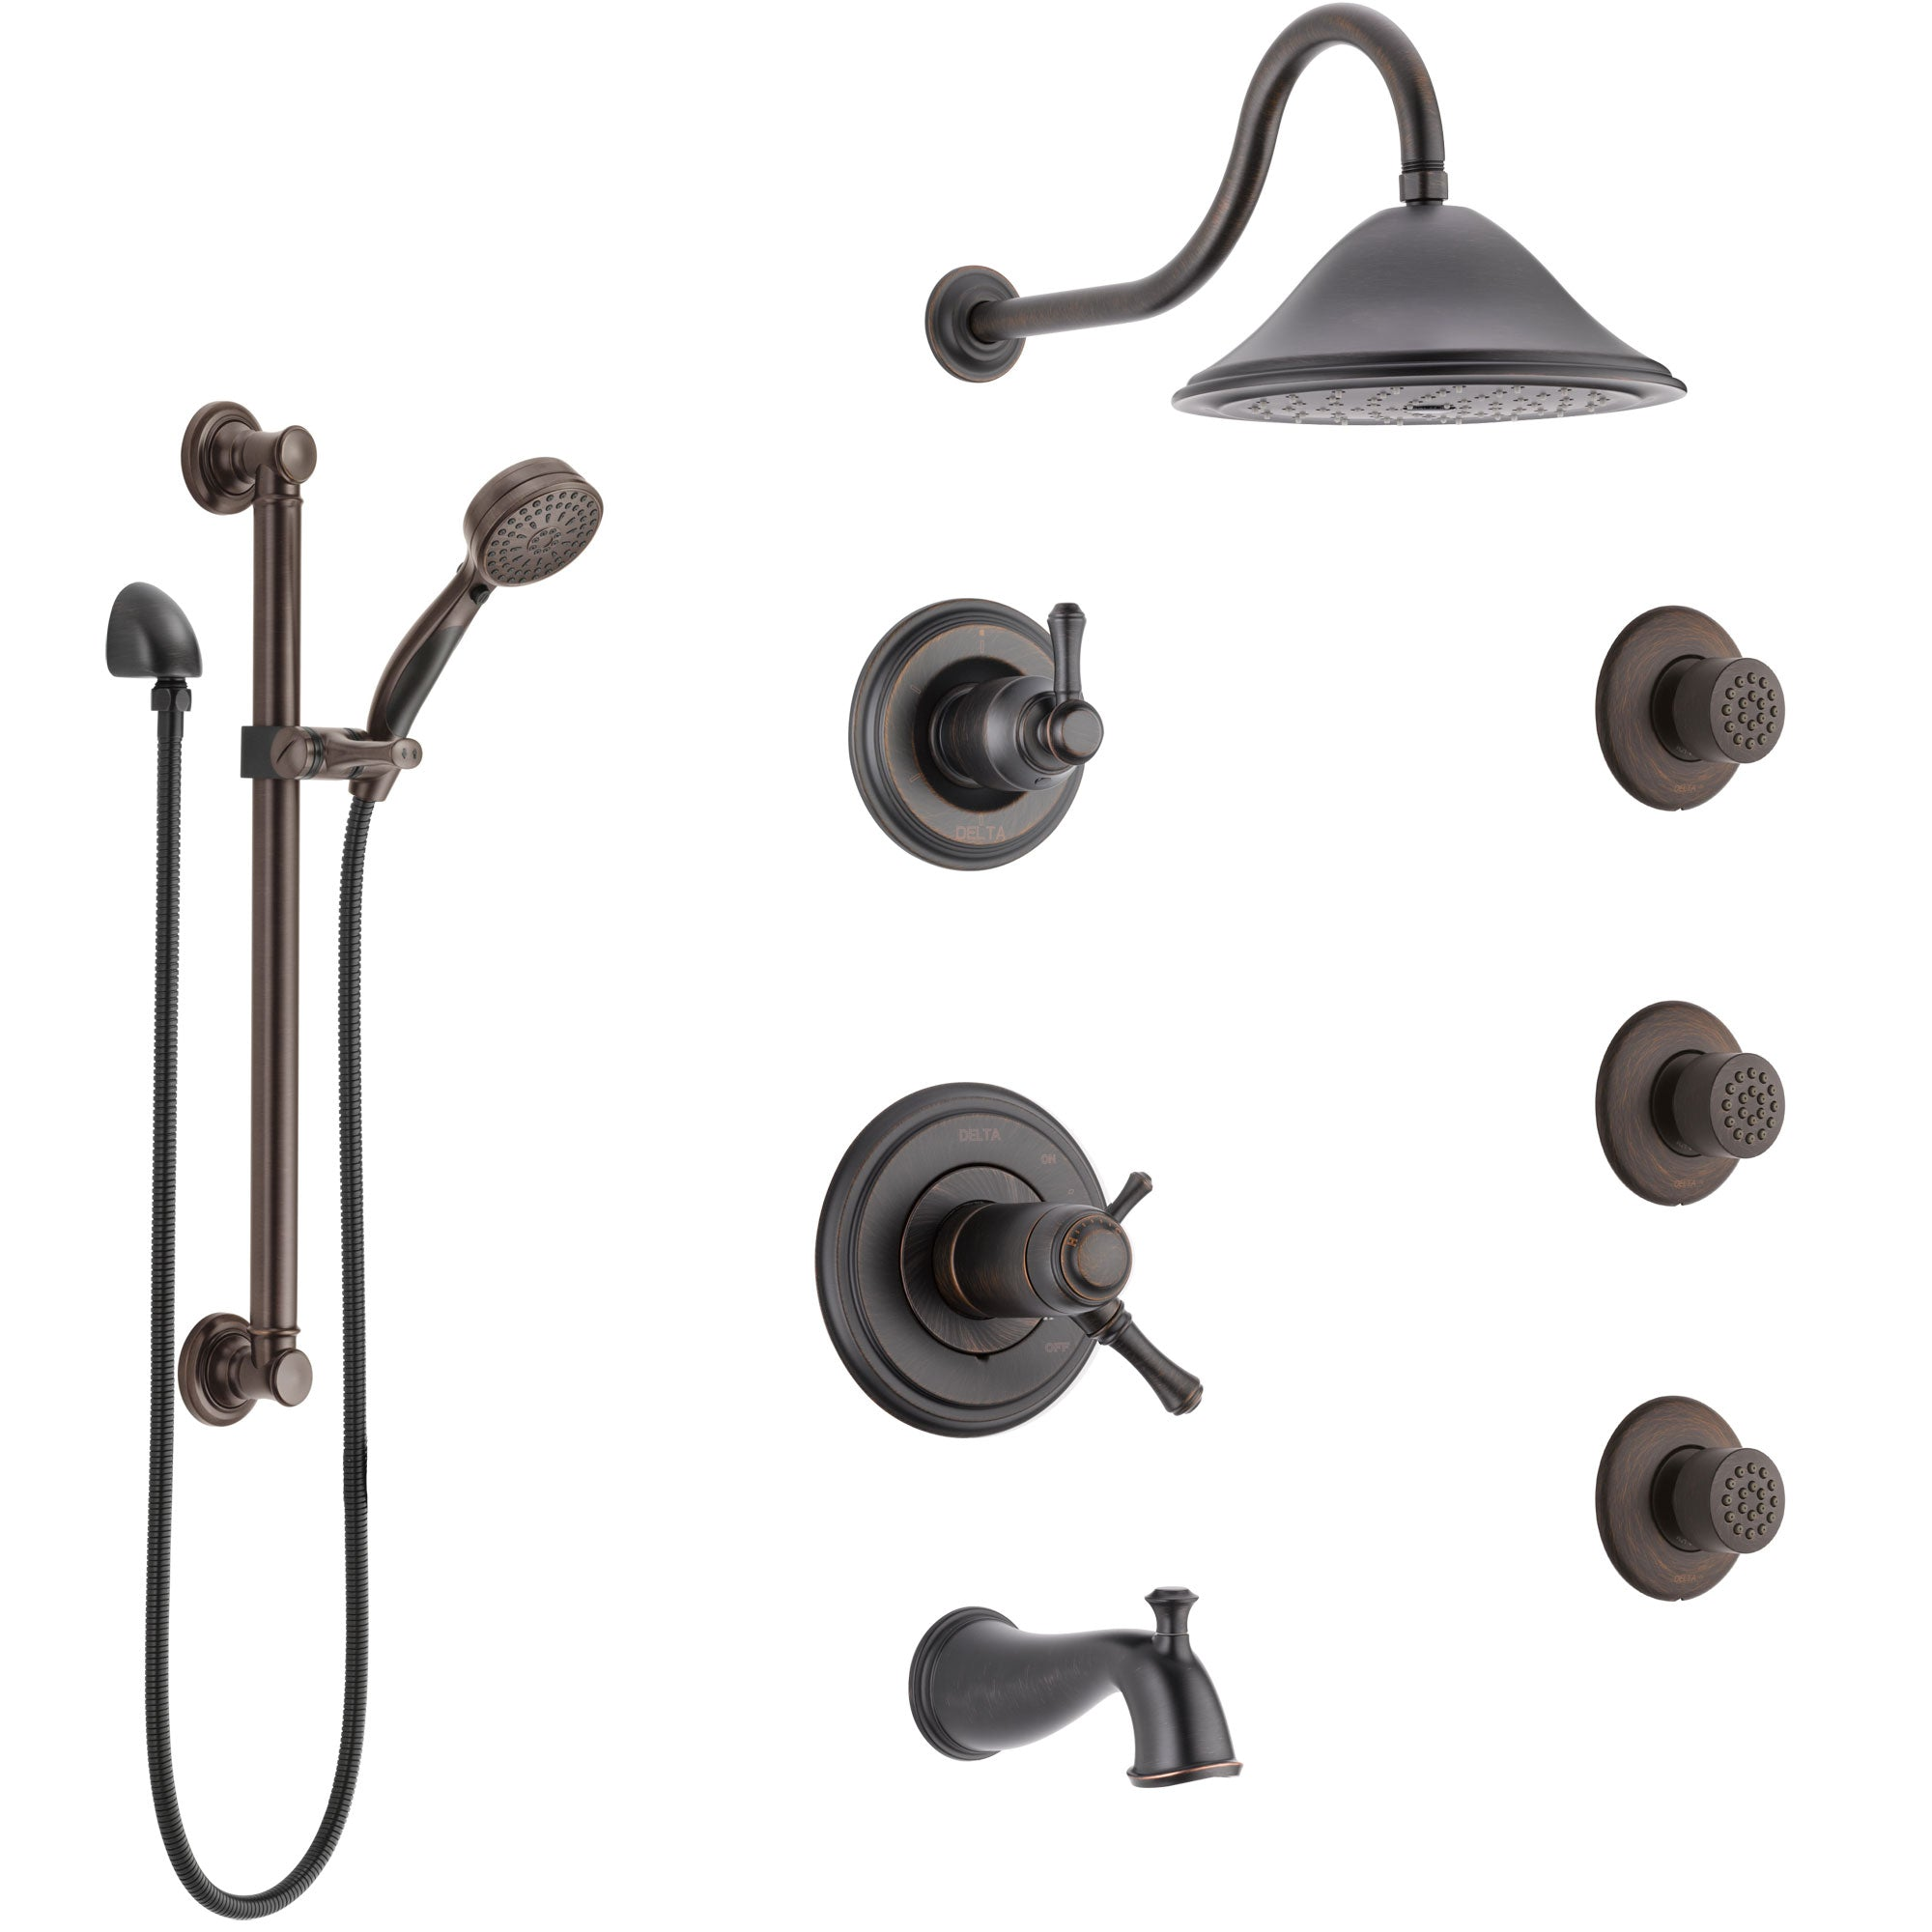 Delta Cassidy Venetian Bronze Dual Thermostatic Control Tub and Shower System, Diverter, Showerhead, 3 Body Sprays, Grab Bar Hand Spray SS17T4971RB1